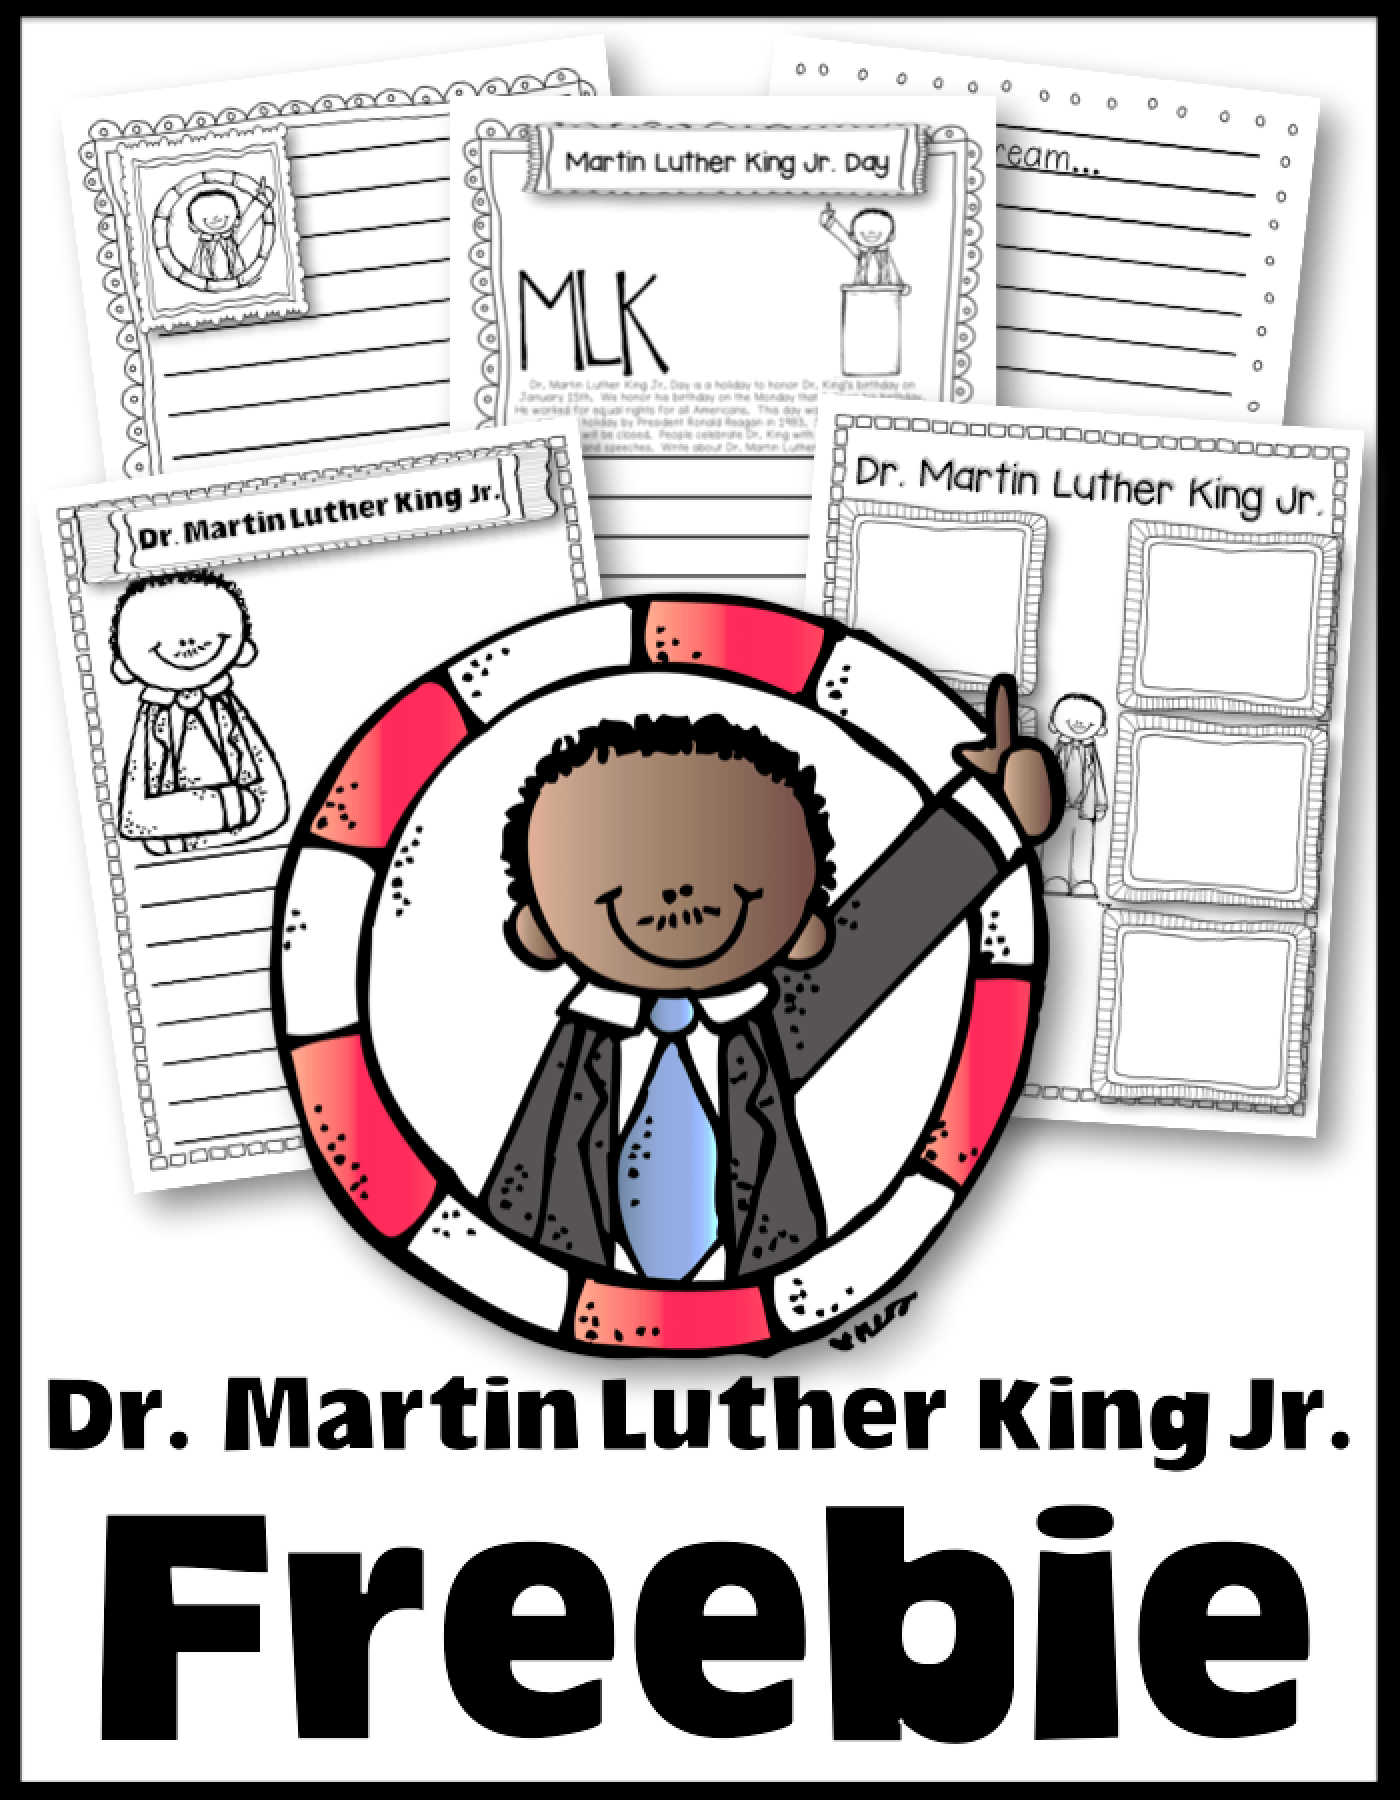 Free Worksheets Writing And More To Celebrate Dr Martin Luther King Jr Day Inside You Will